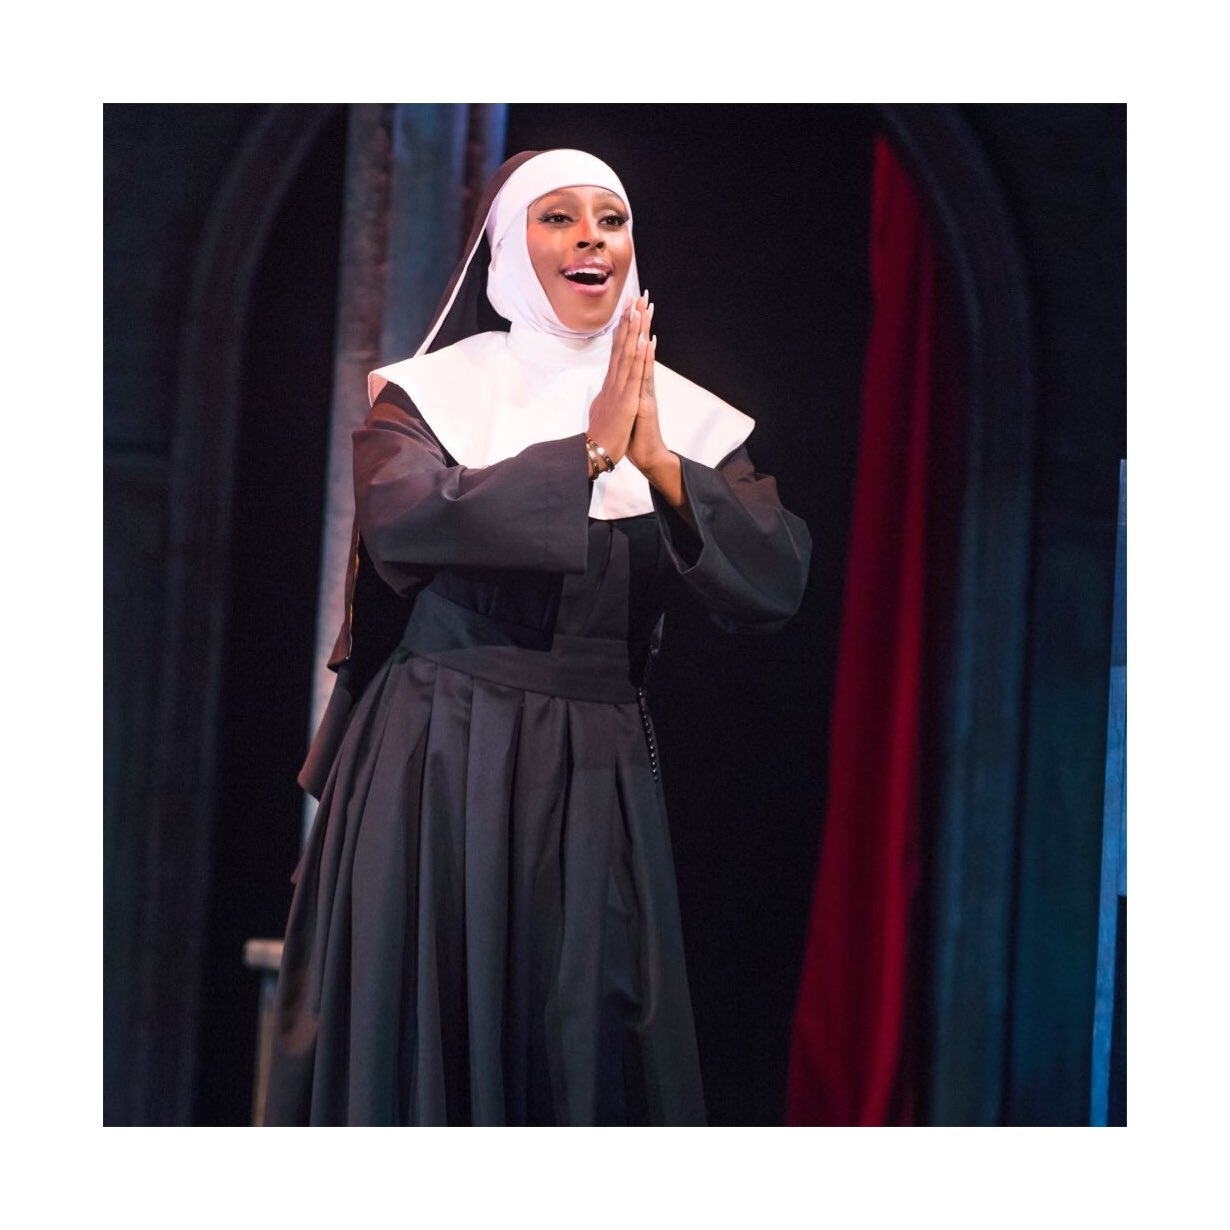 One last show from me tonight @wycombeswan ! What a great week it's been! #SisterActUKTour https://t.co/lZMcWN95QU